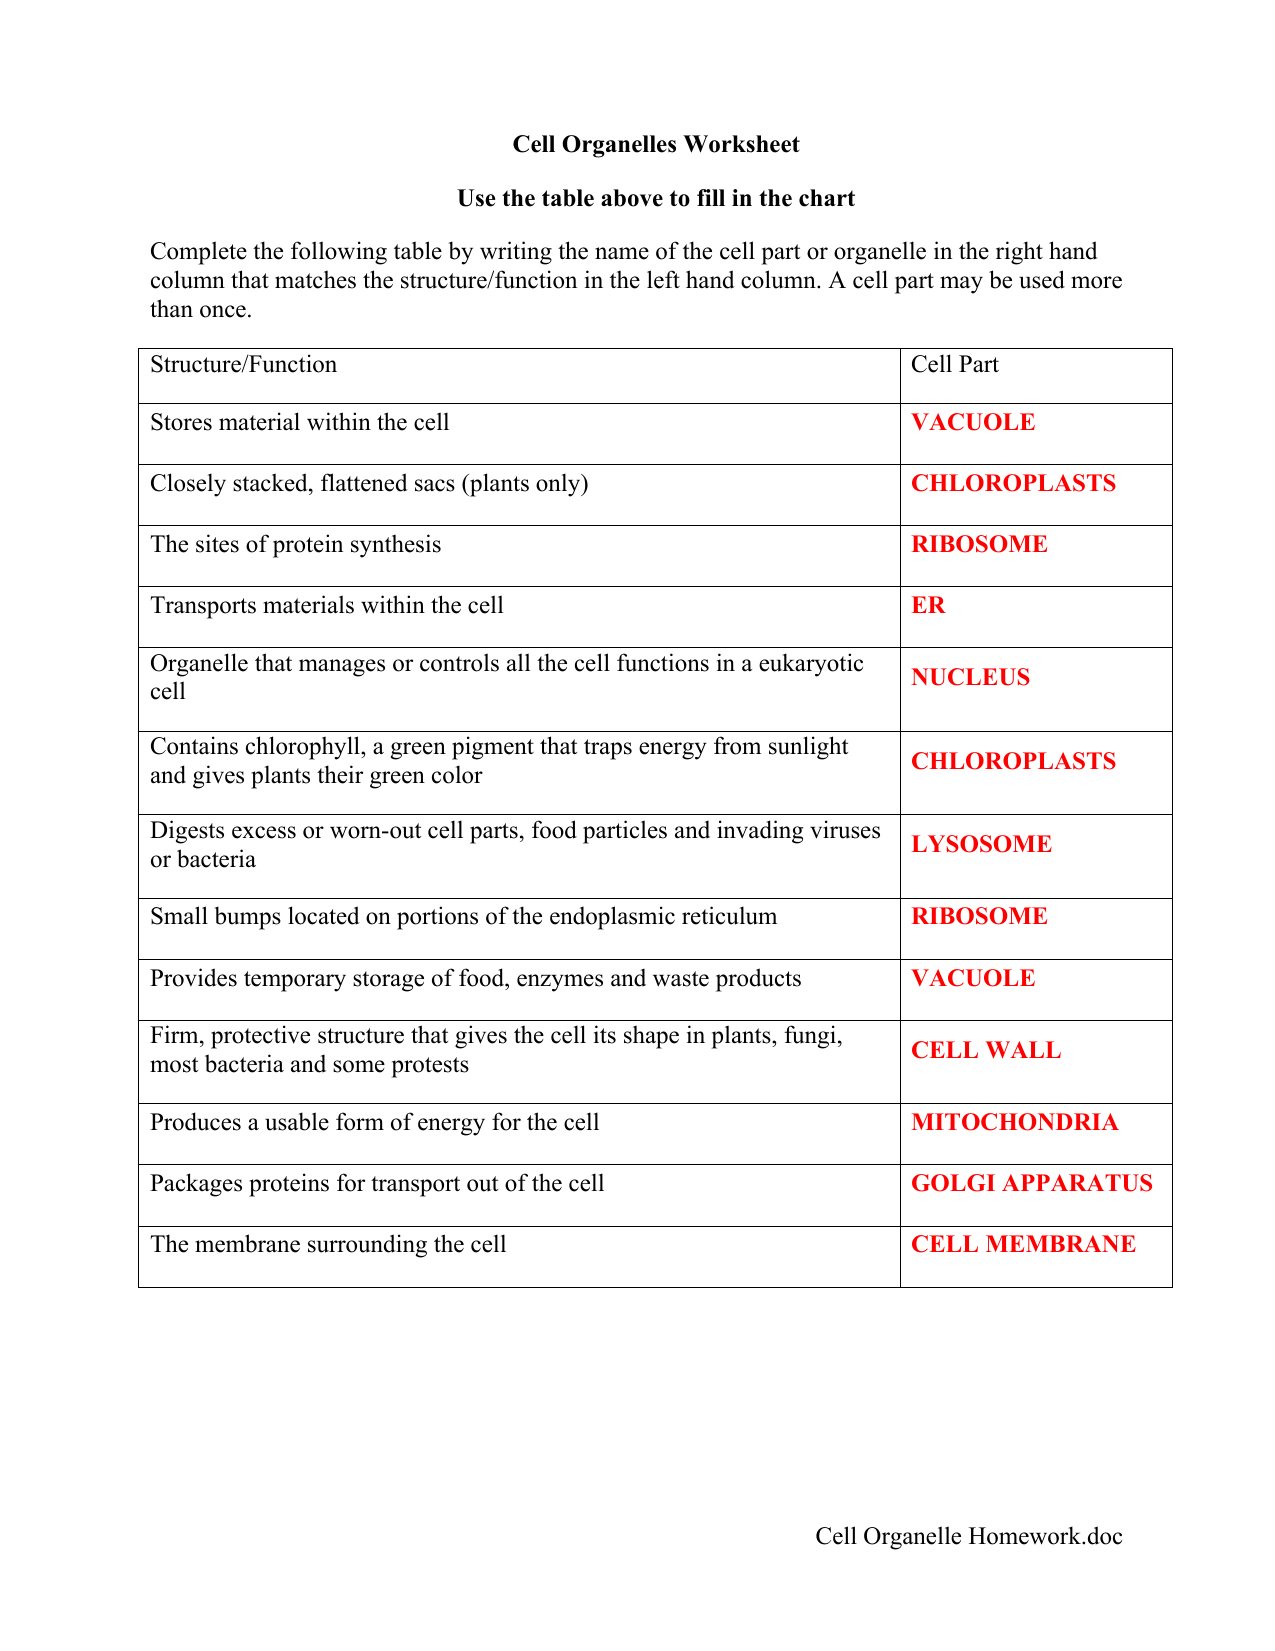 Cell Organelle Homeworkdoc Cell Organelles Worksheet Within Cells And Their Organelles Worksheet